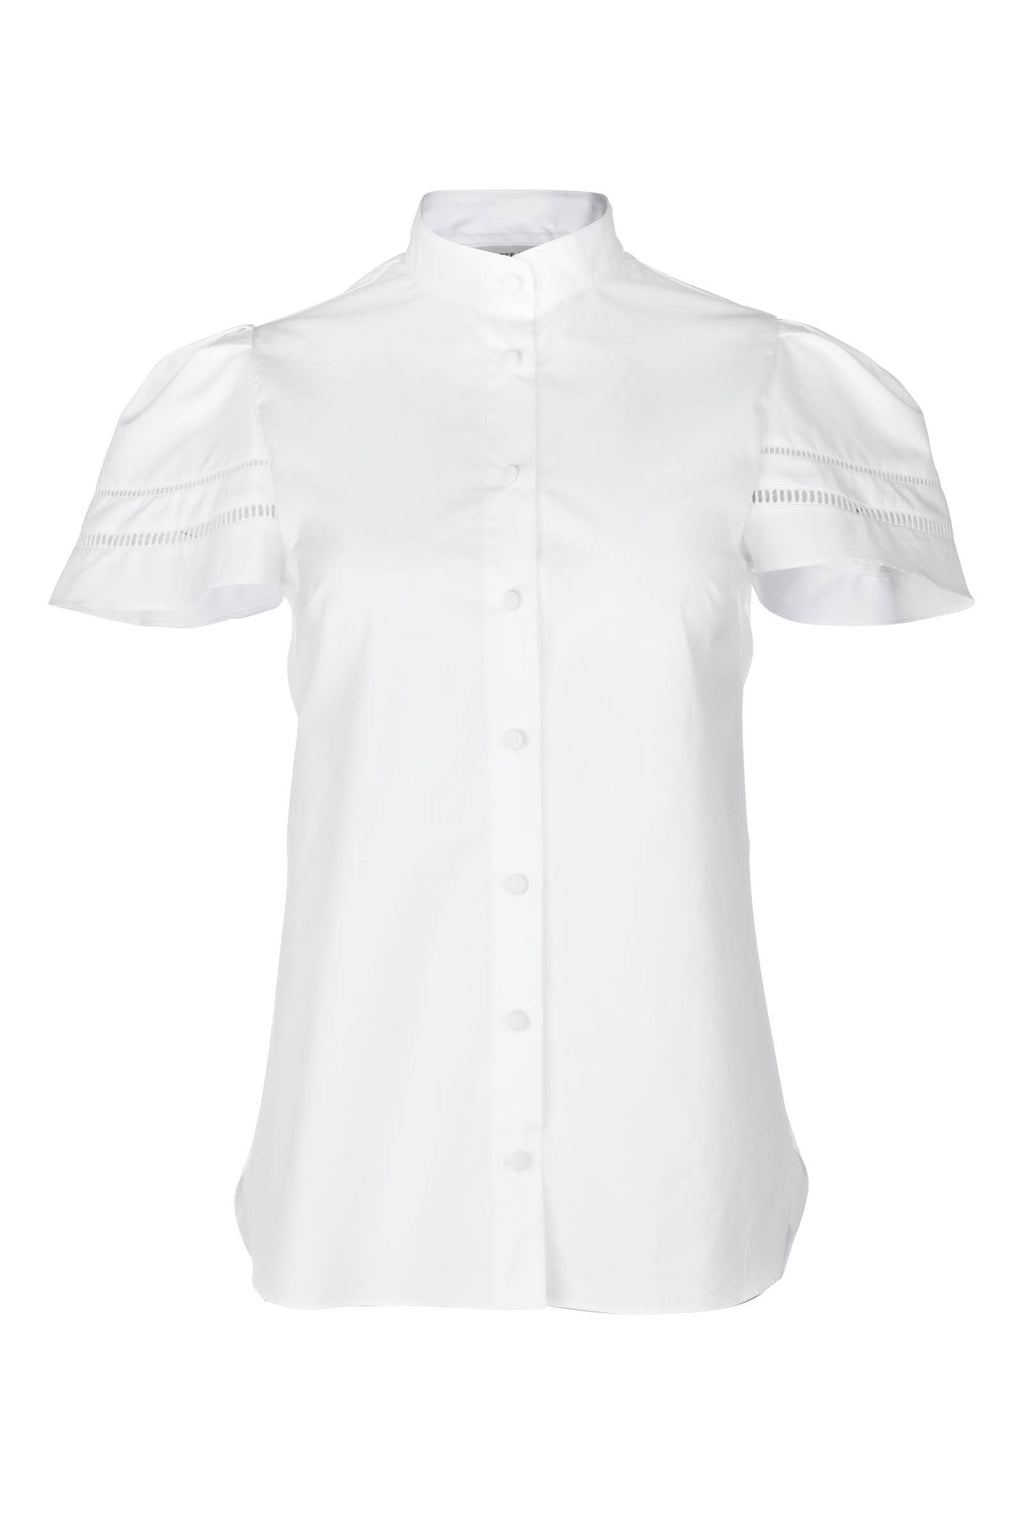 Trellis Blouse - White